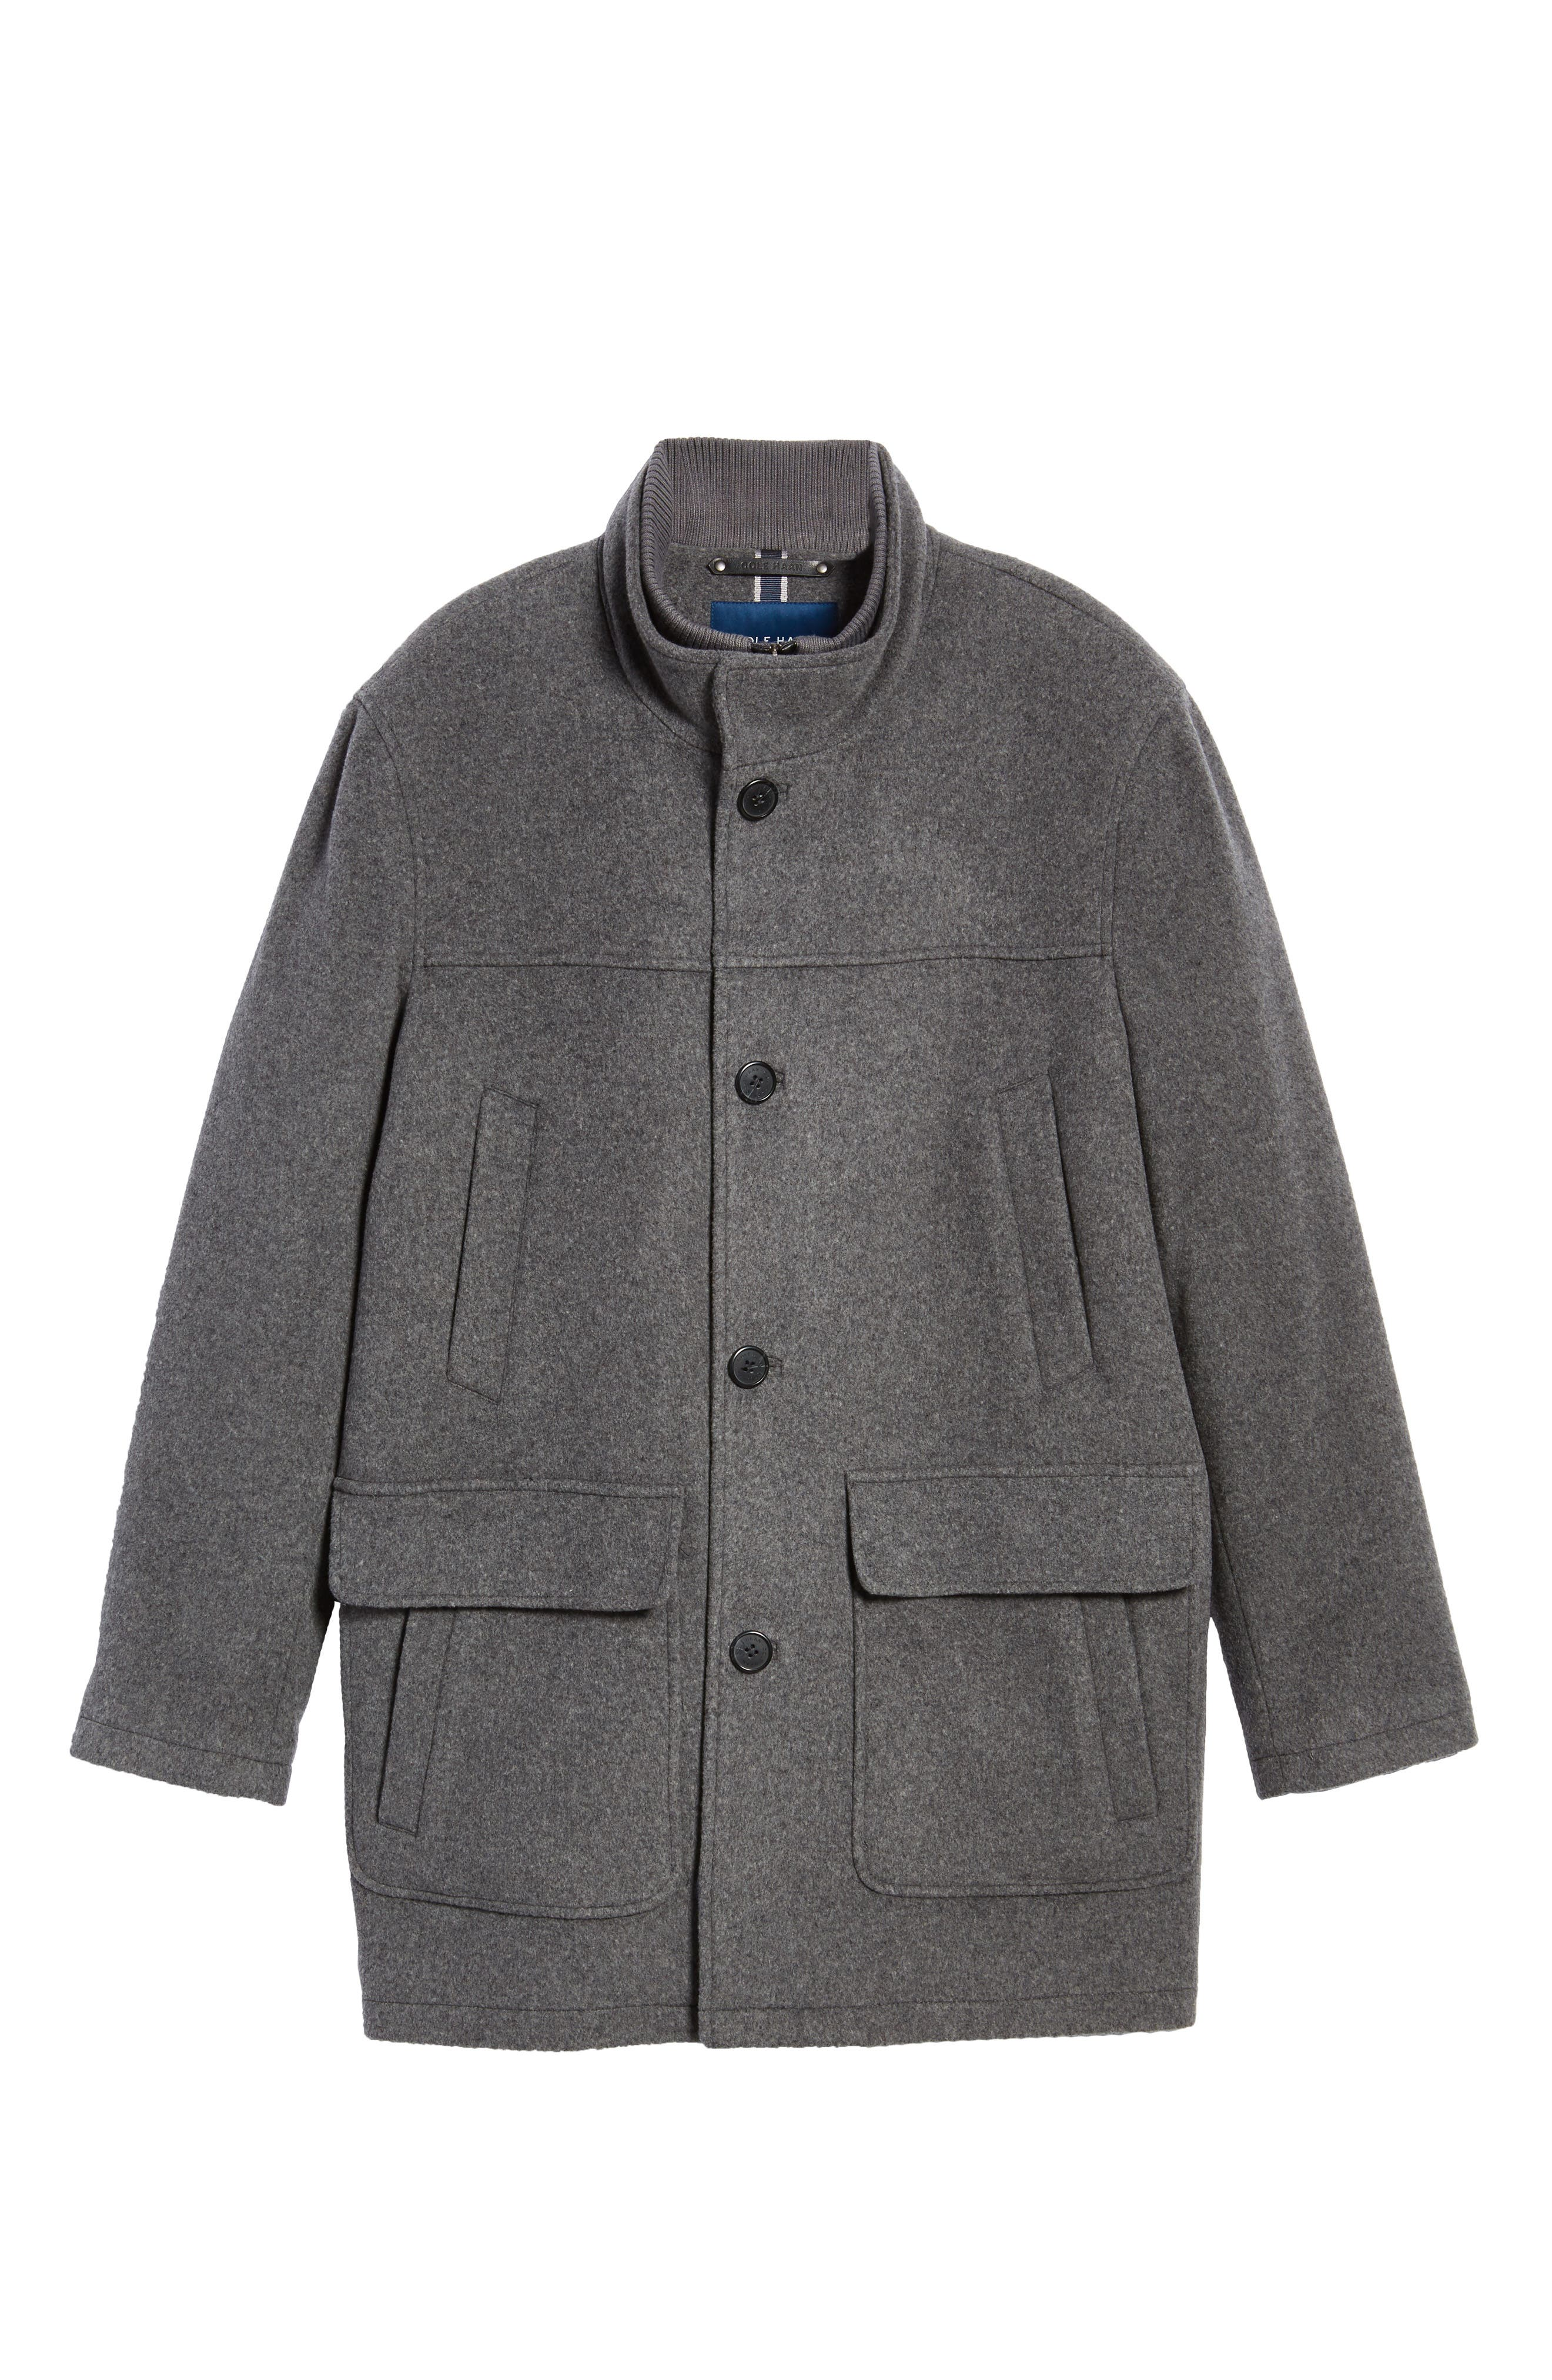 Wool Blend Topcoat with Inset Bib,                             Alternate thumbnail 6, color,                             Light Grey